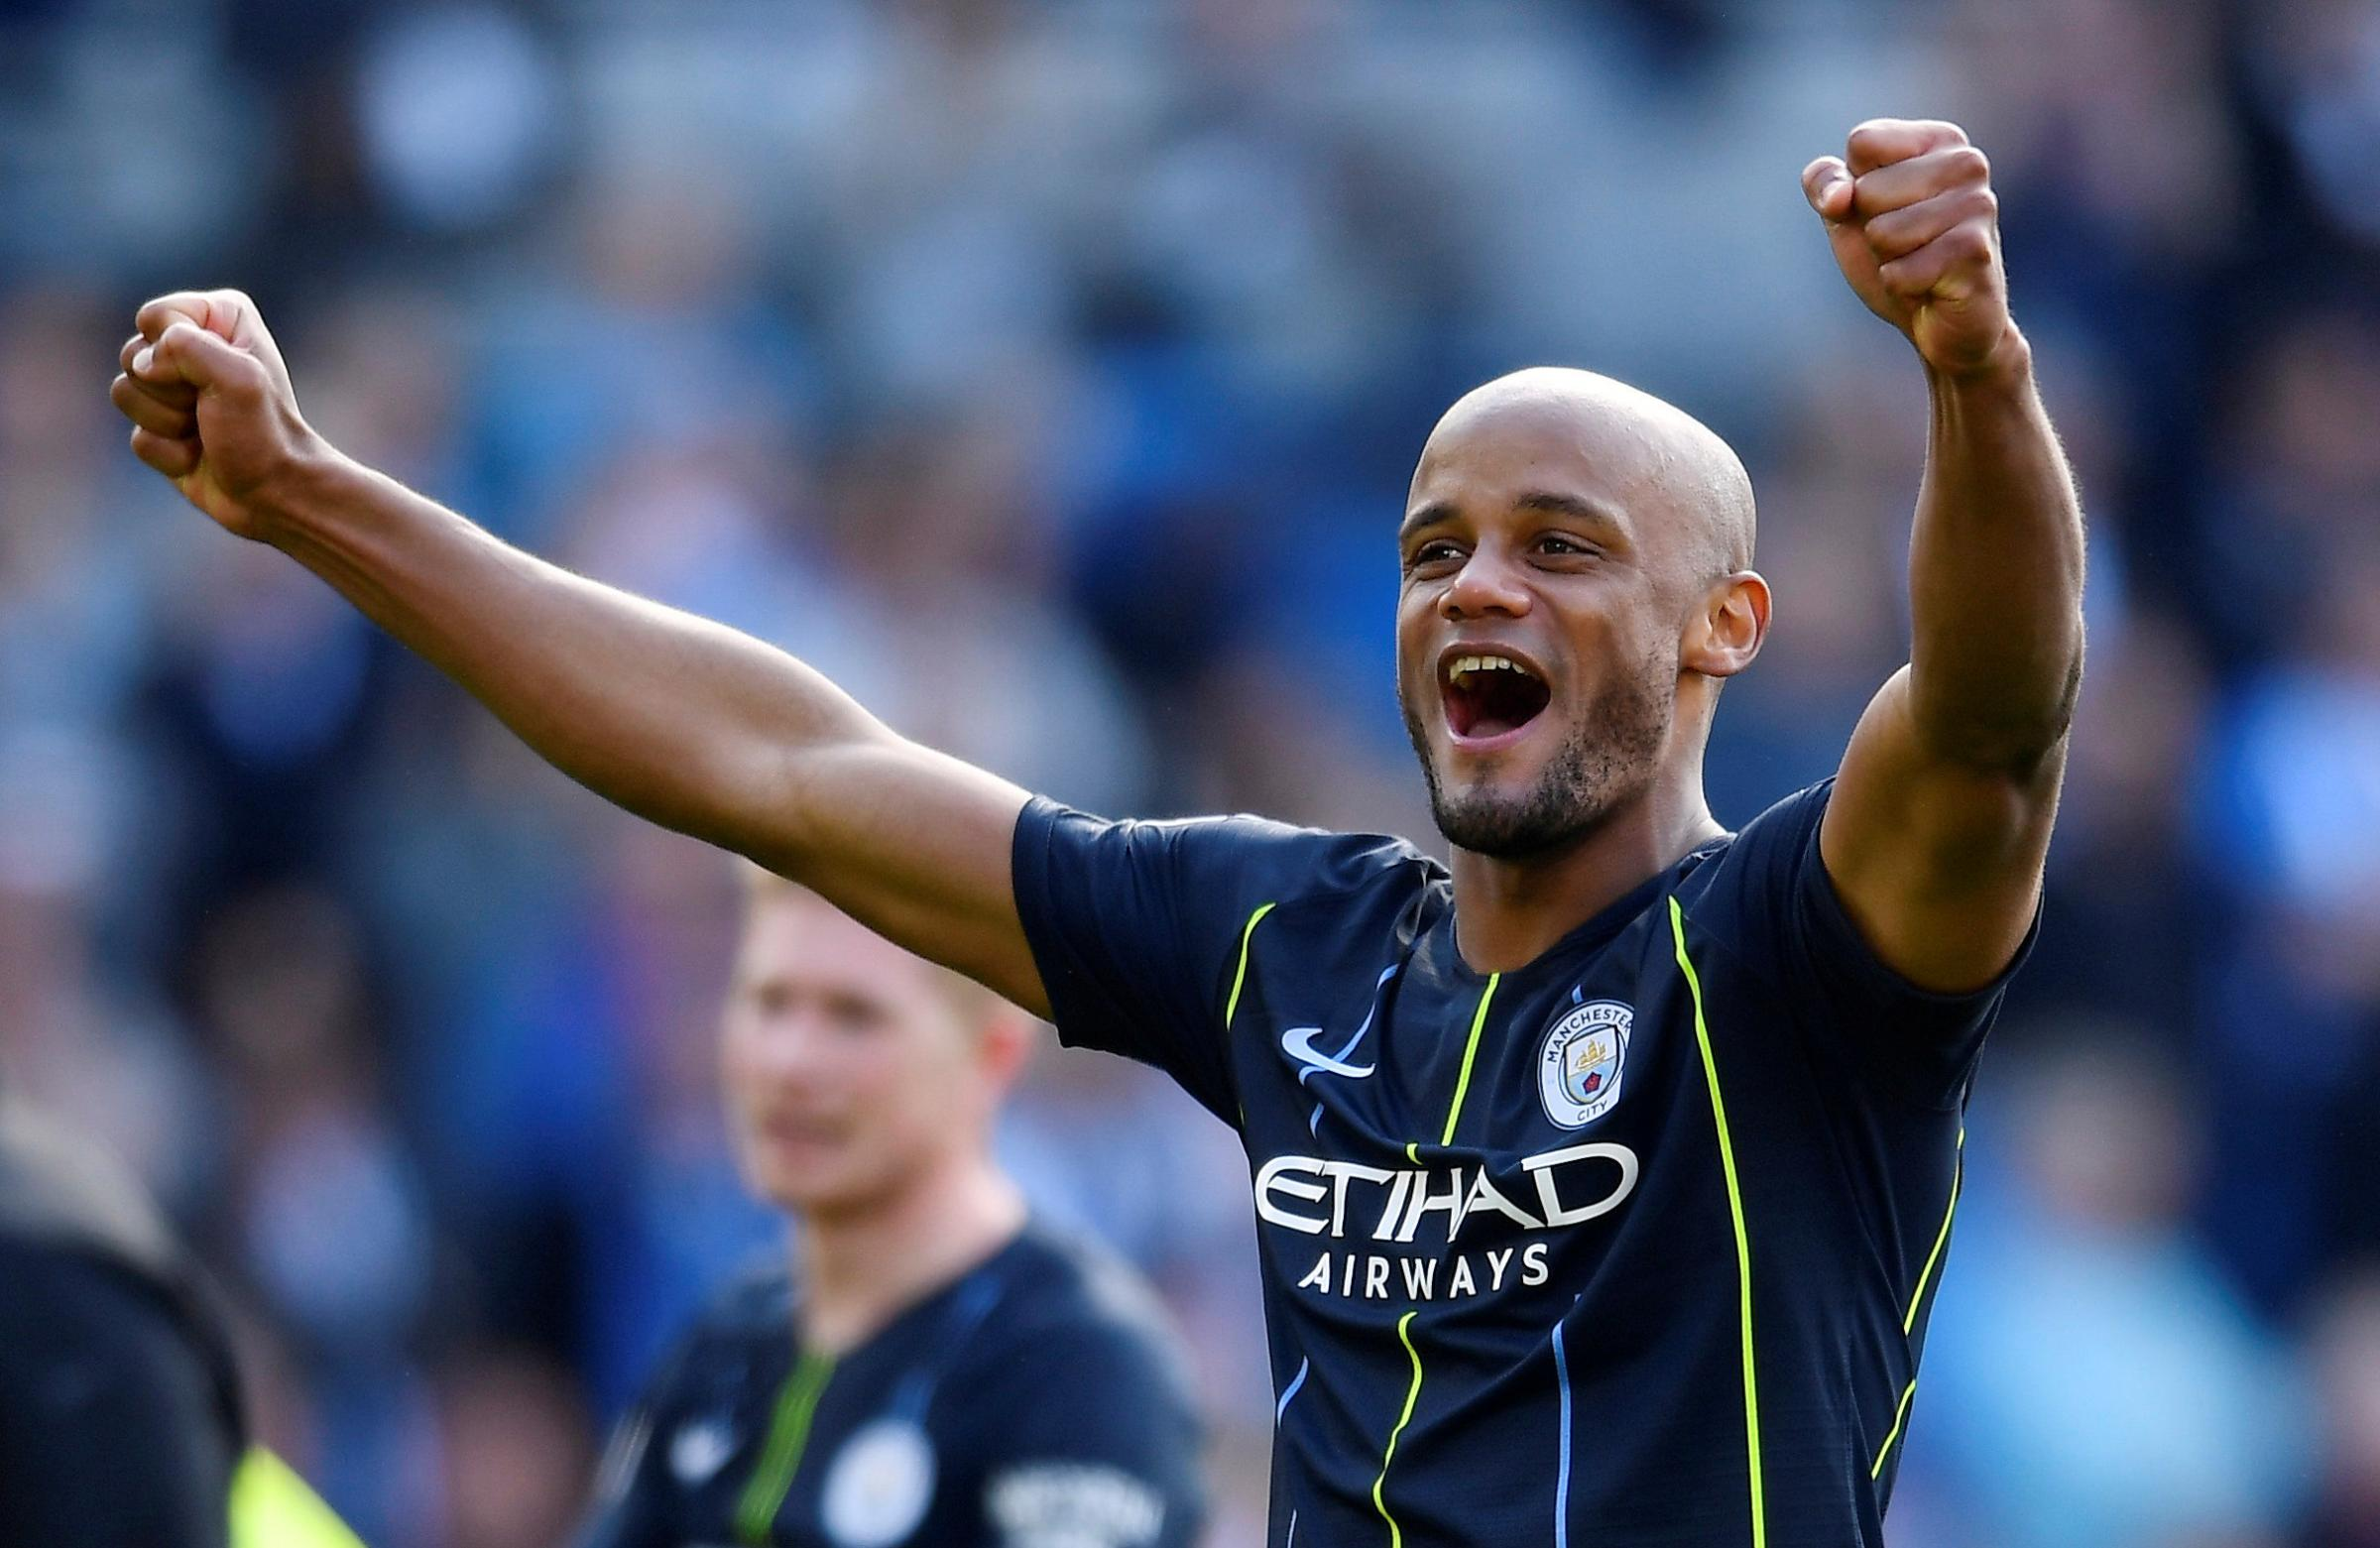 Vincent Kompany celebrates winning the Premier League. Picture: Action Images